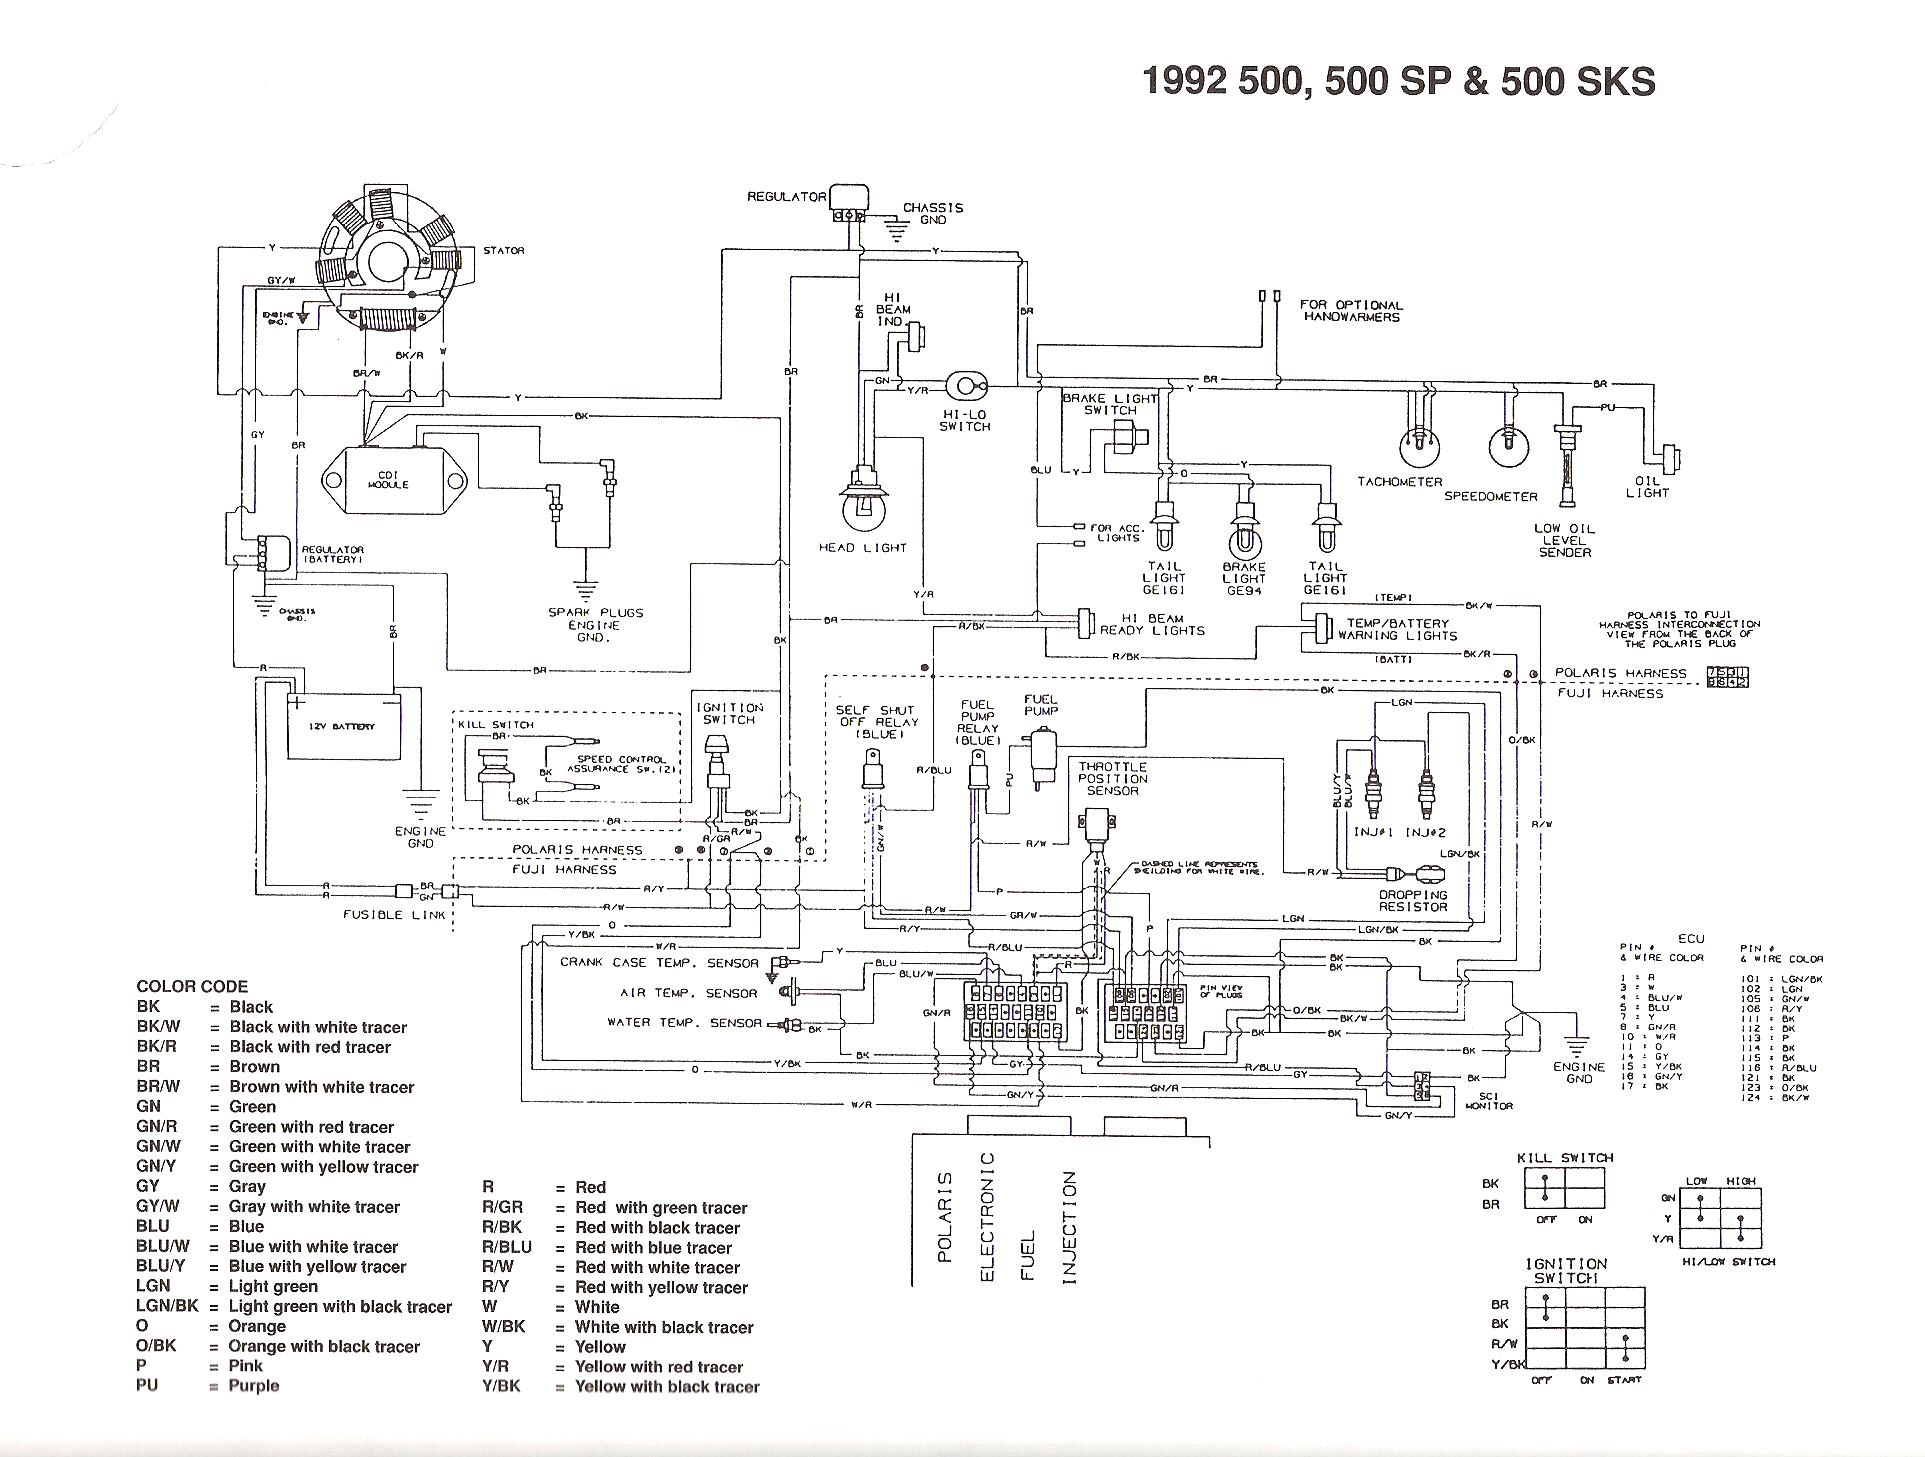 Polaris Ranger 500 Electrical Diagram